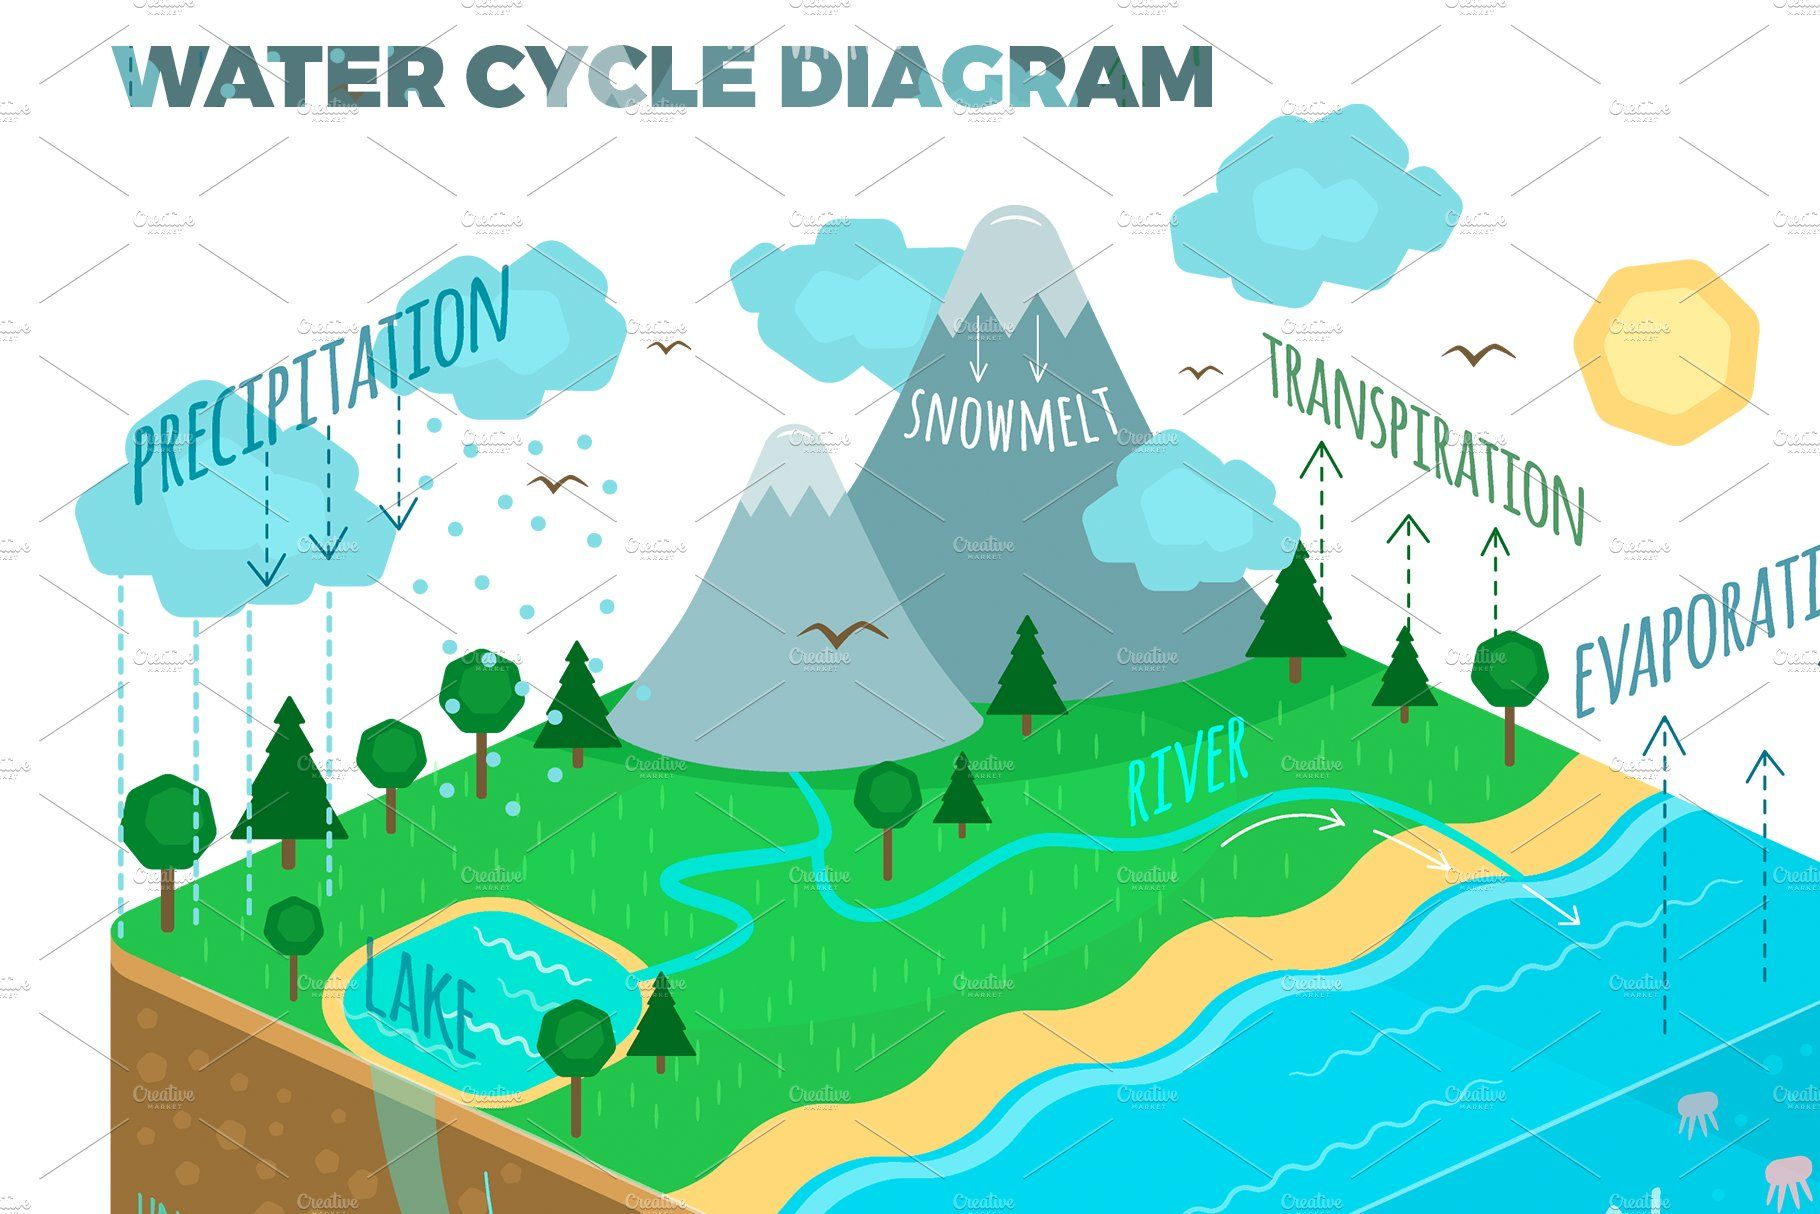 Water Cycle Diagram By Natalka Dmitrova On Creativemarket Water Cycle Diagram How To Draw Hands Hand Drawn Vector Illustrations